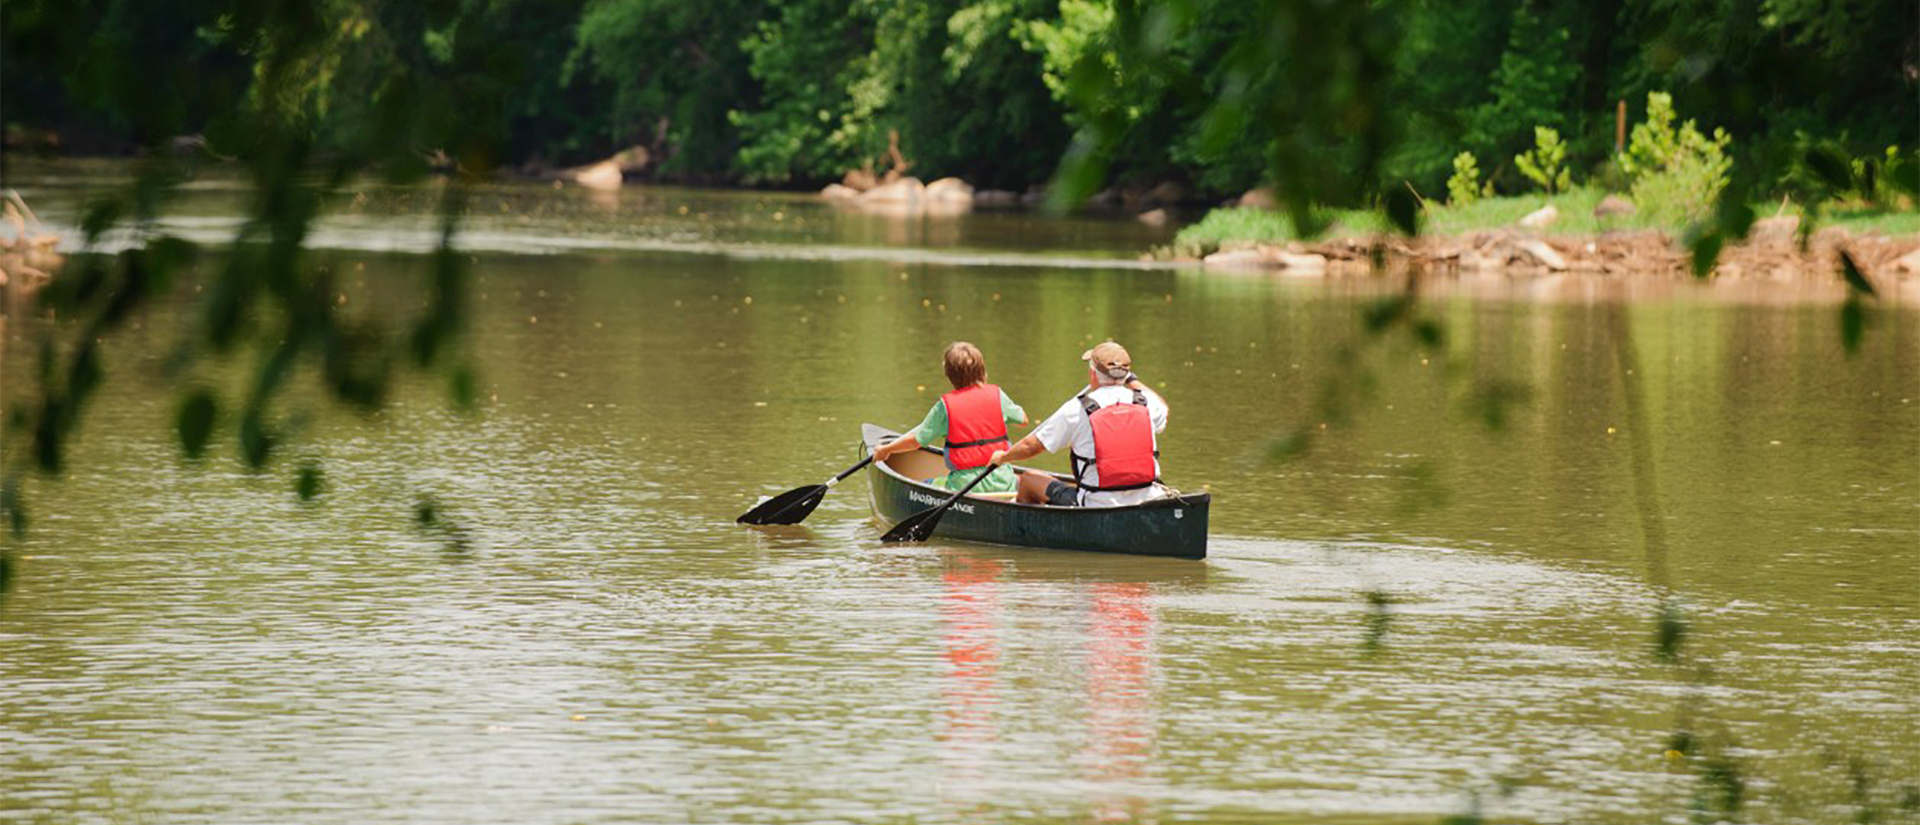 Canoeing on the Dan River in Stokes County